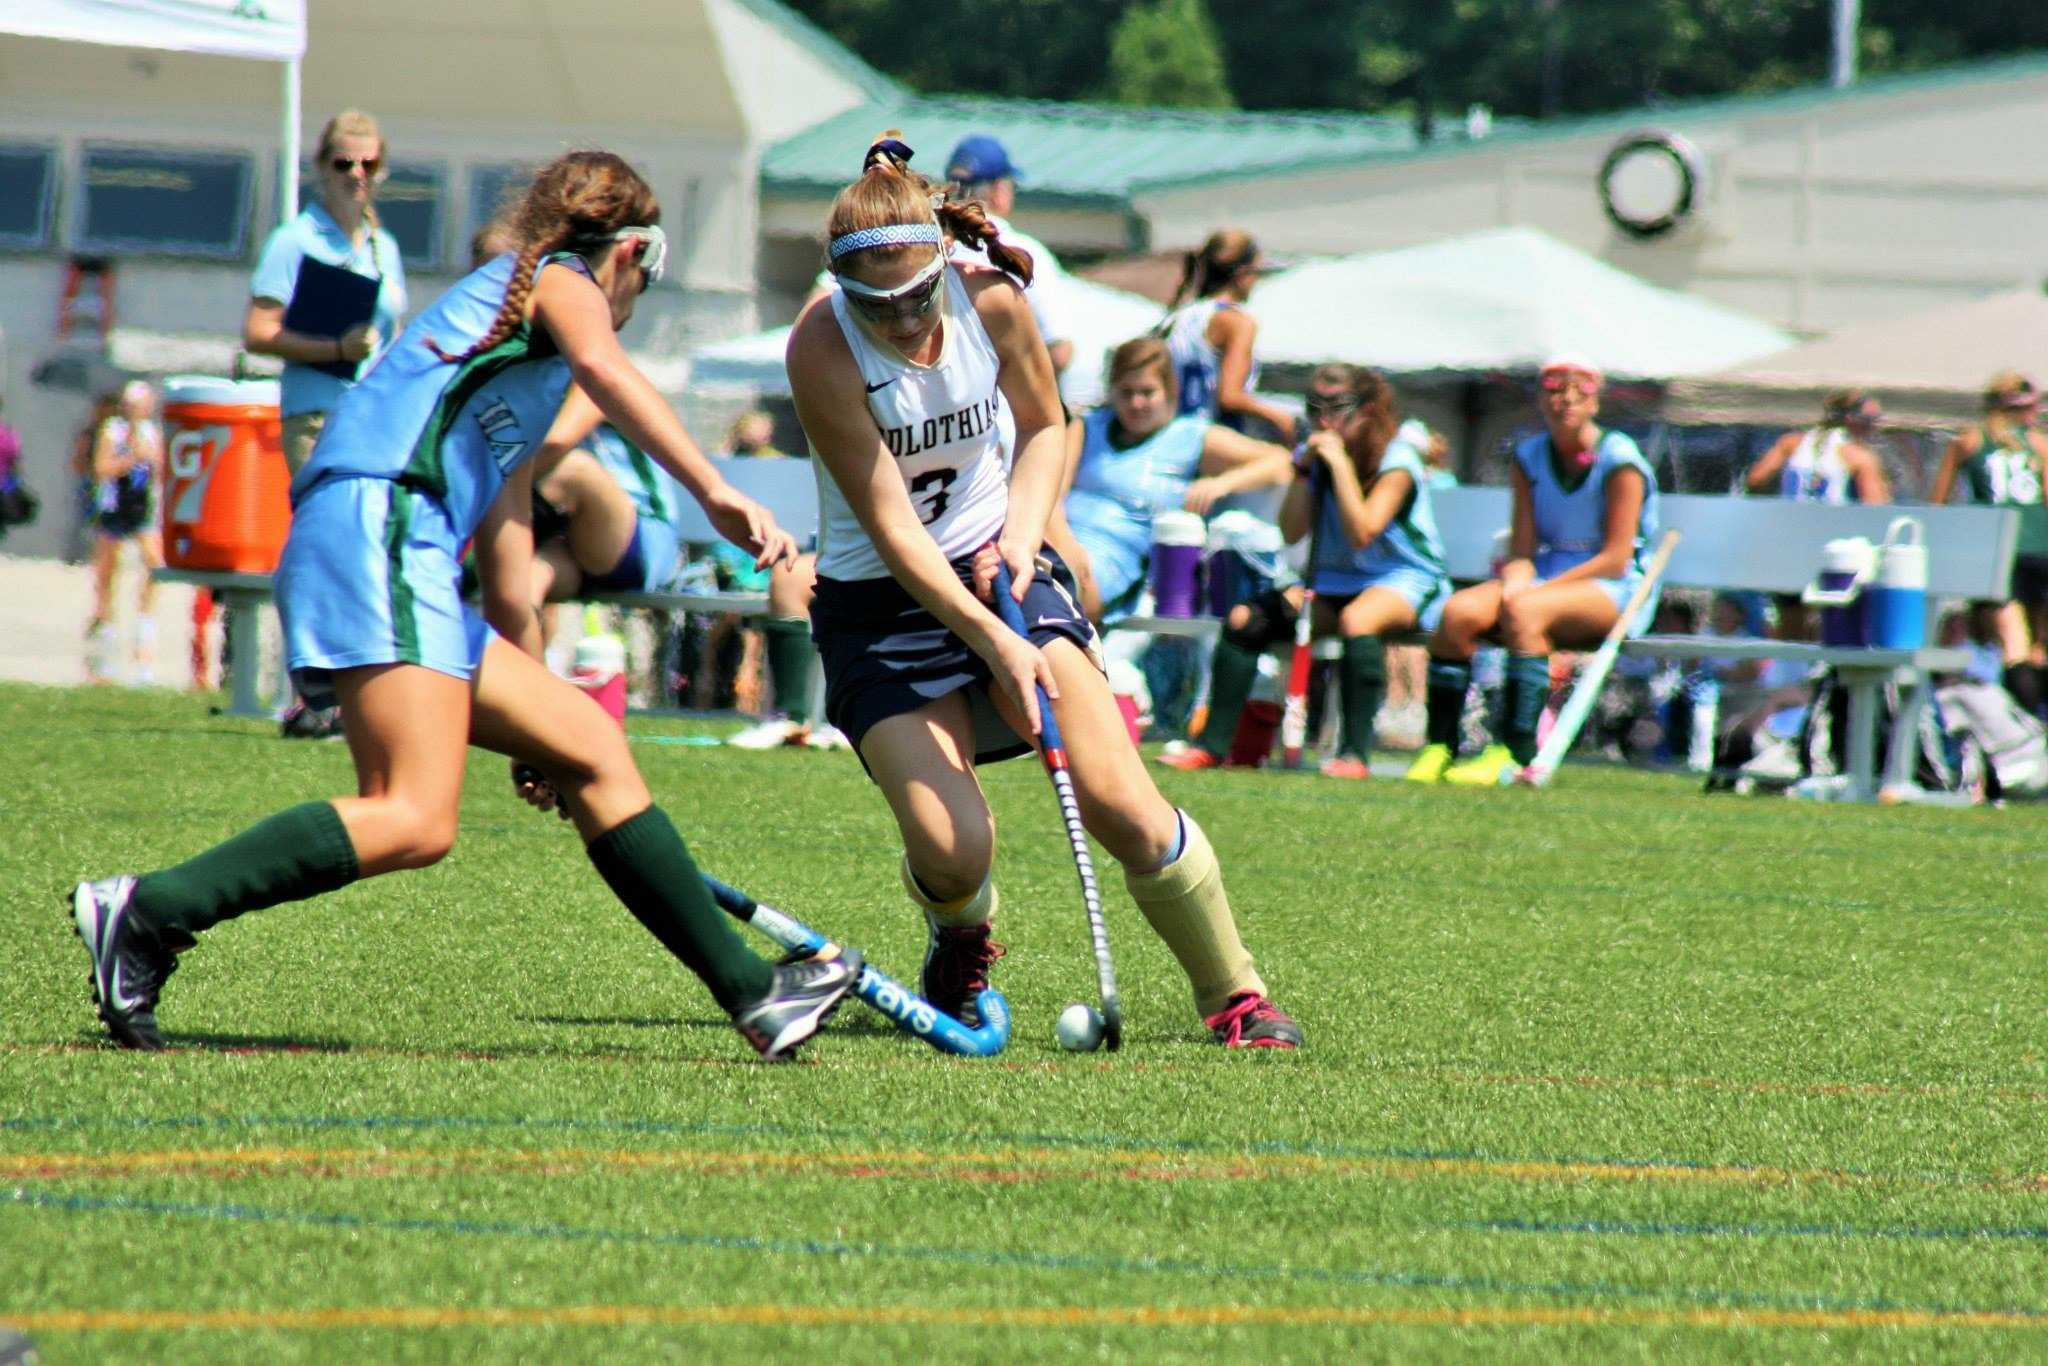 Nora Mulroy dodges her way around a defender, giving her free reign of the middle.